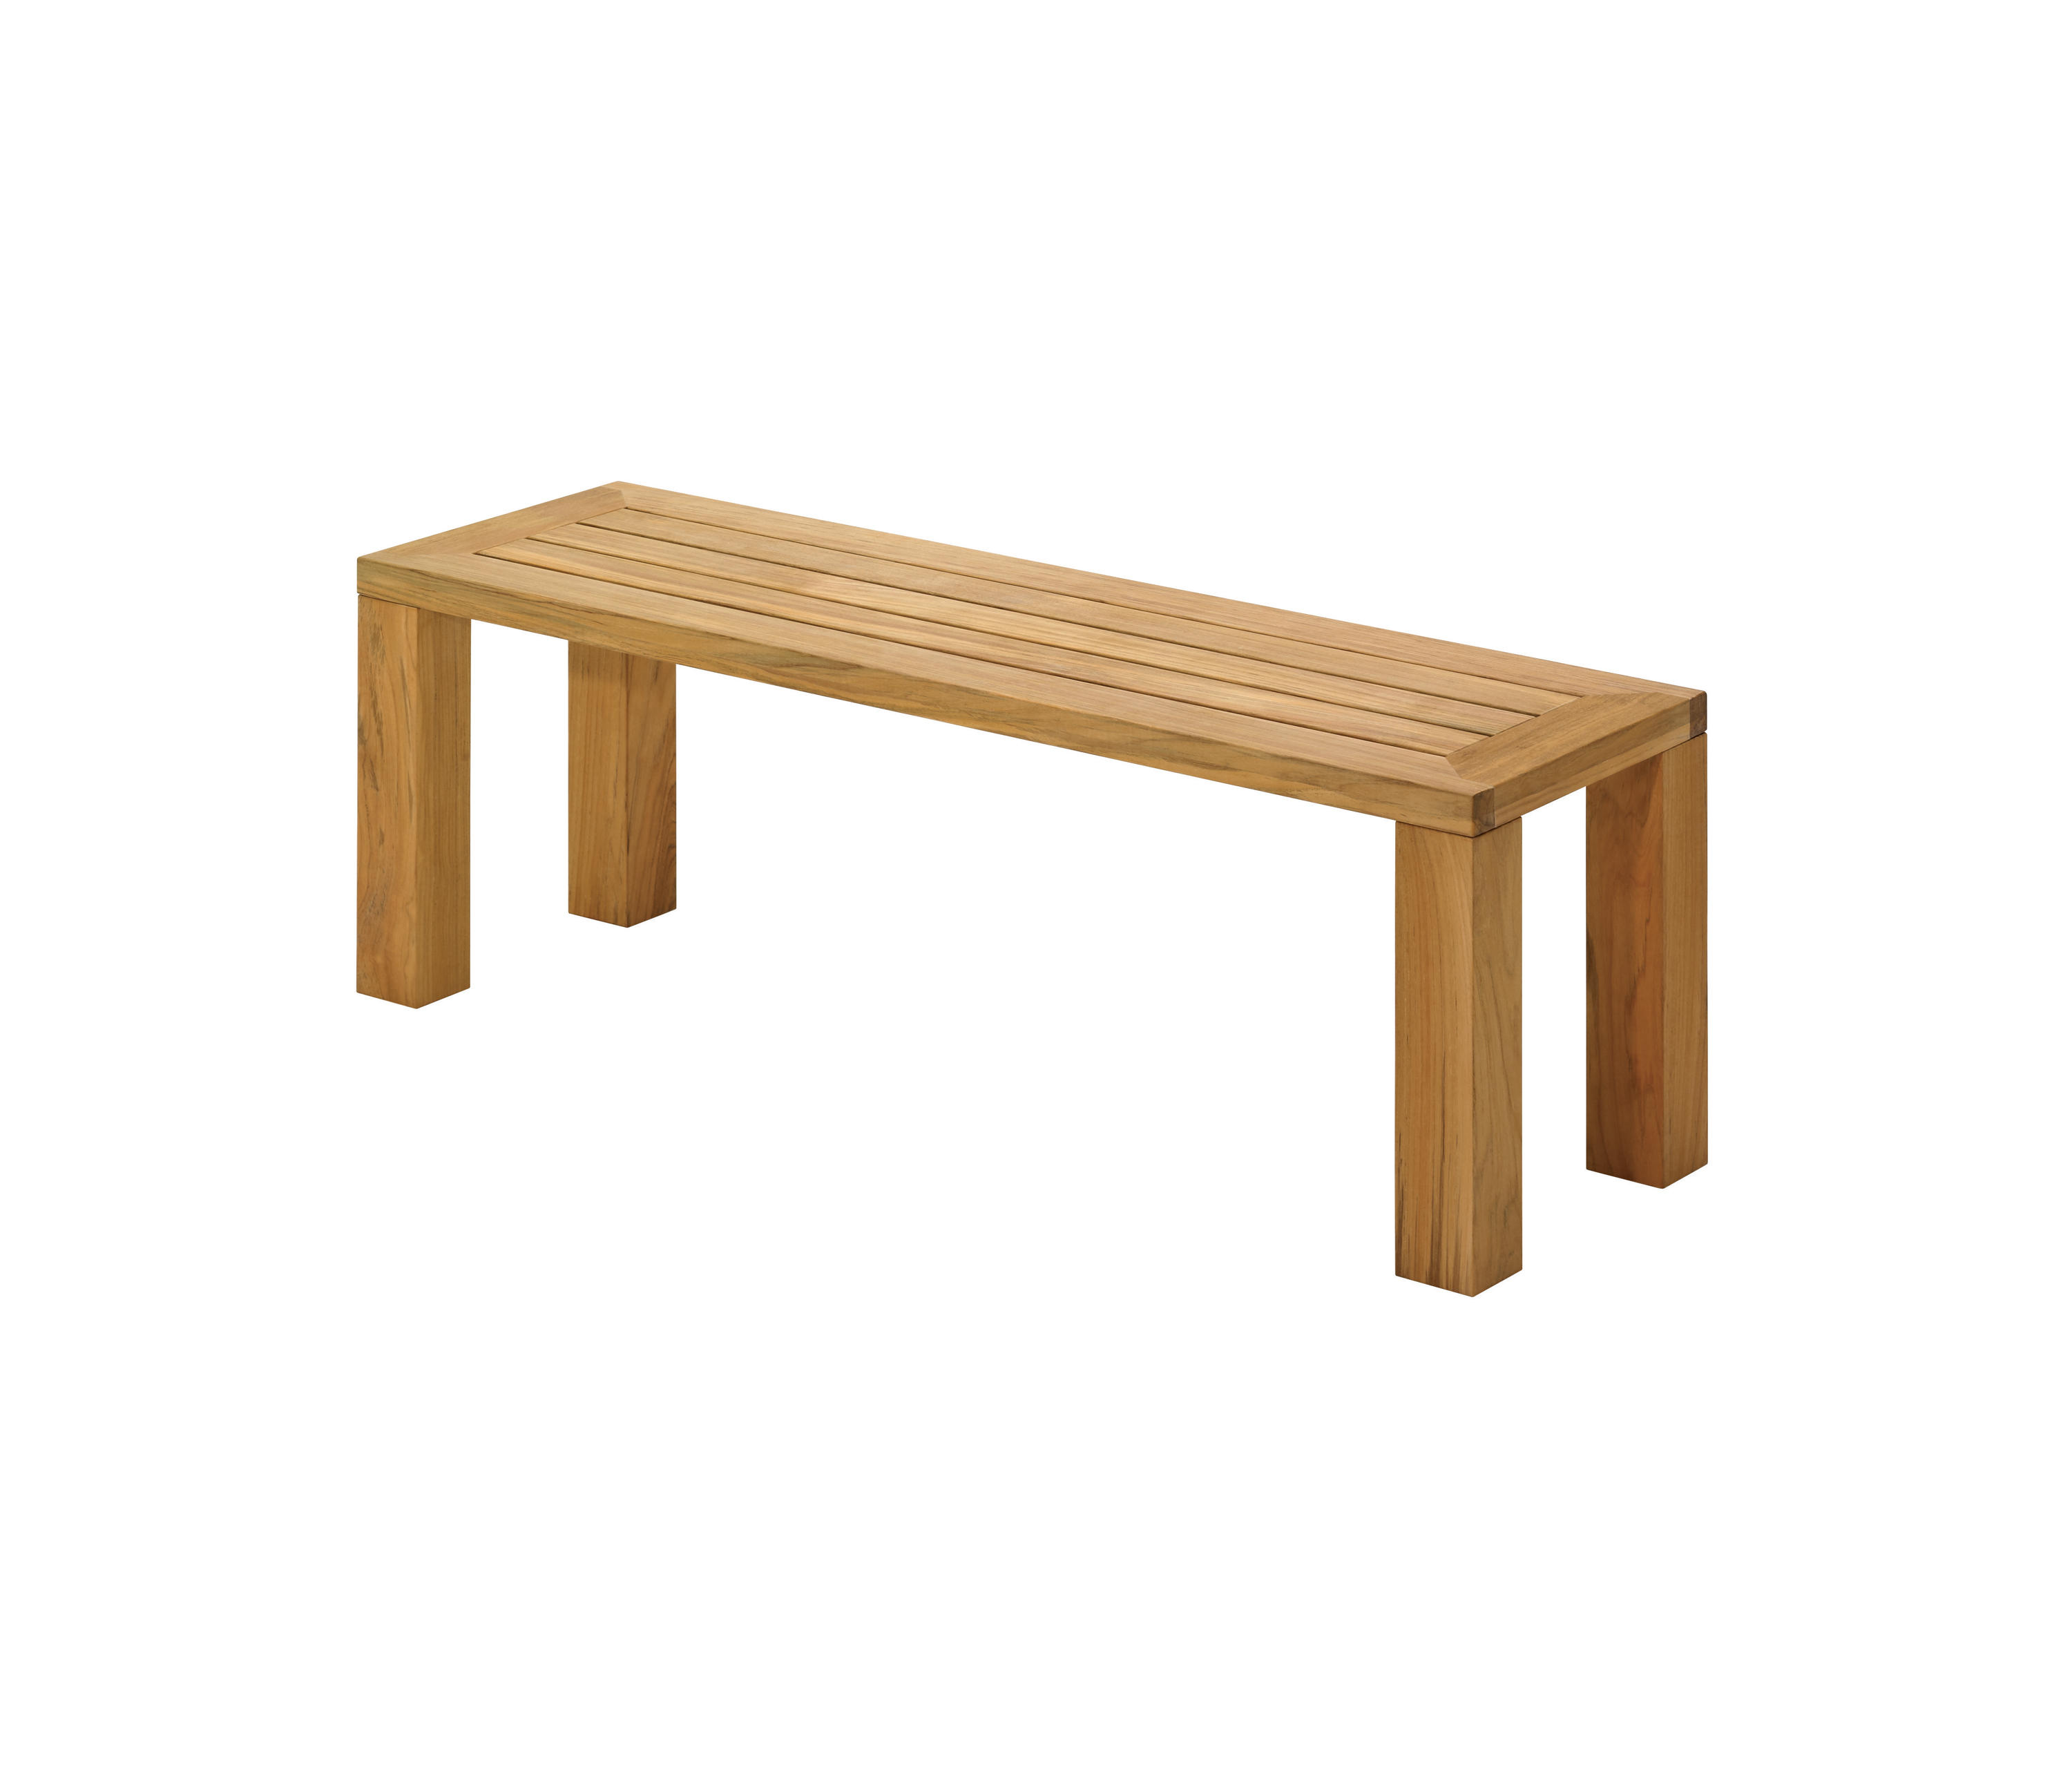 Square 131cm backless bench by gloster furniture gmbh benches